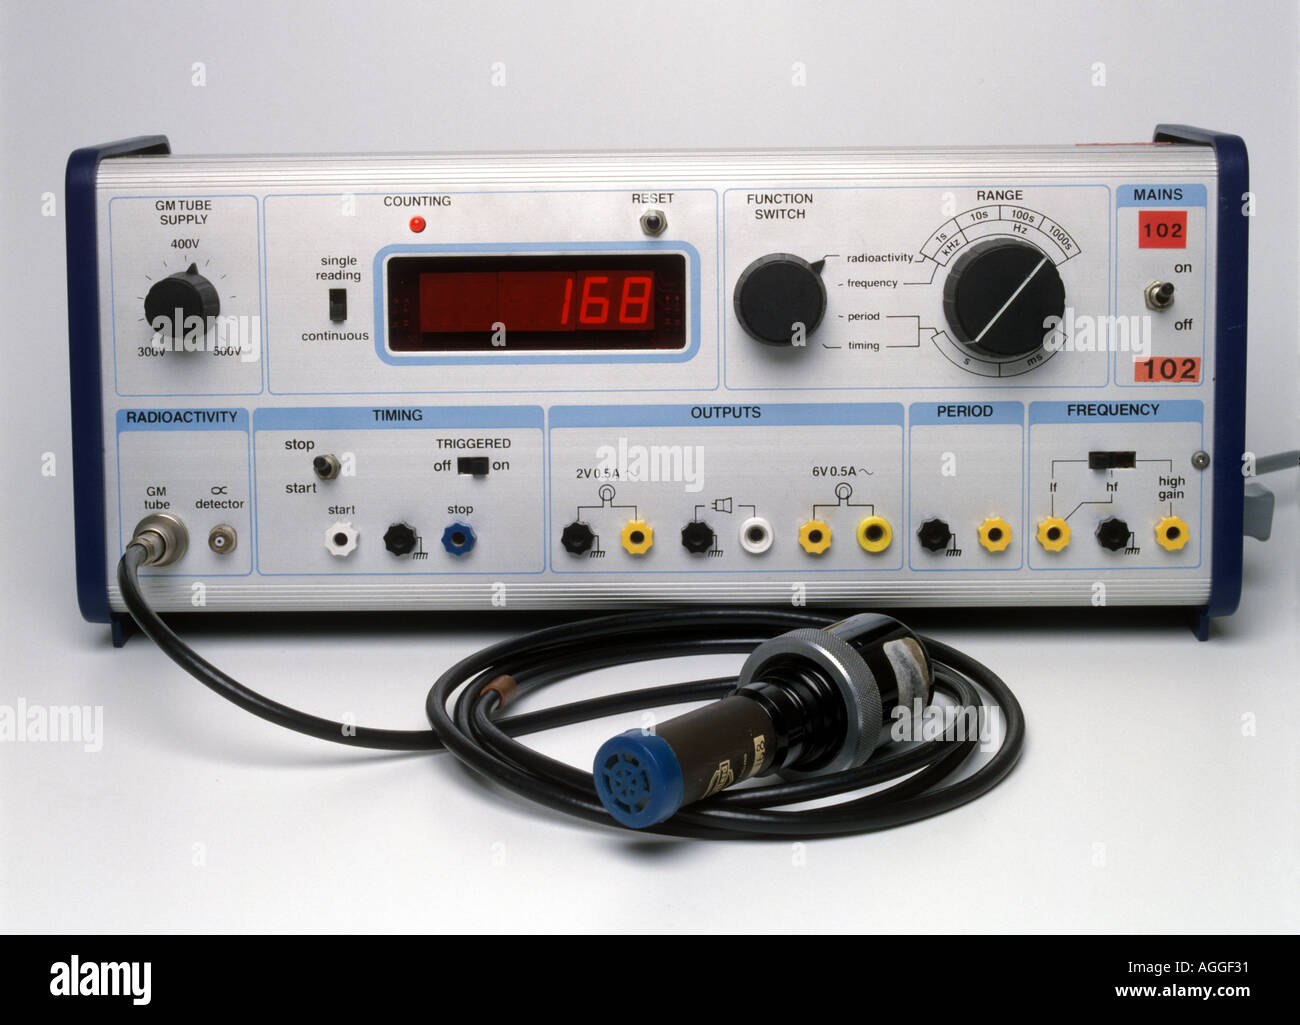 measuring radioactive background count with a geiger counter - Stock Image